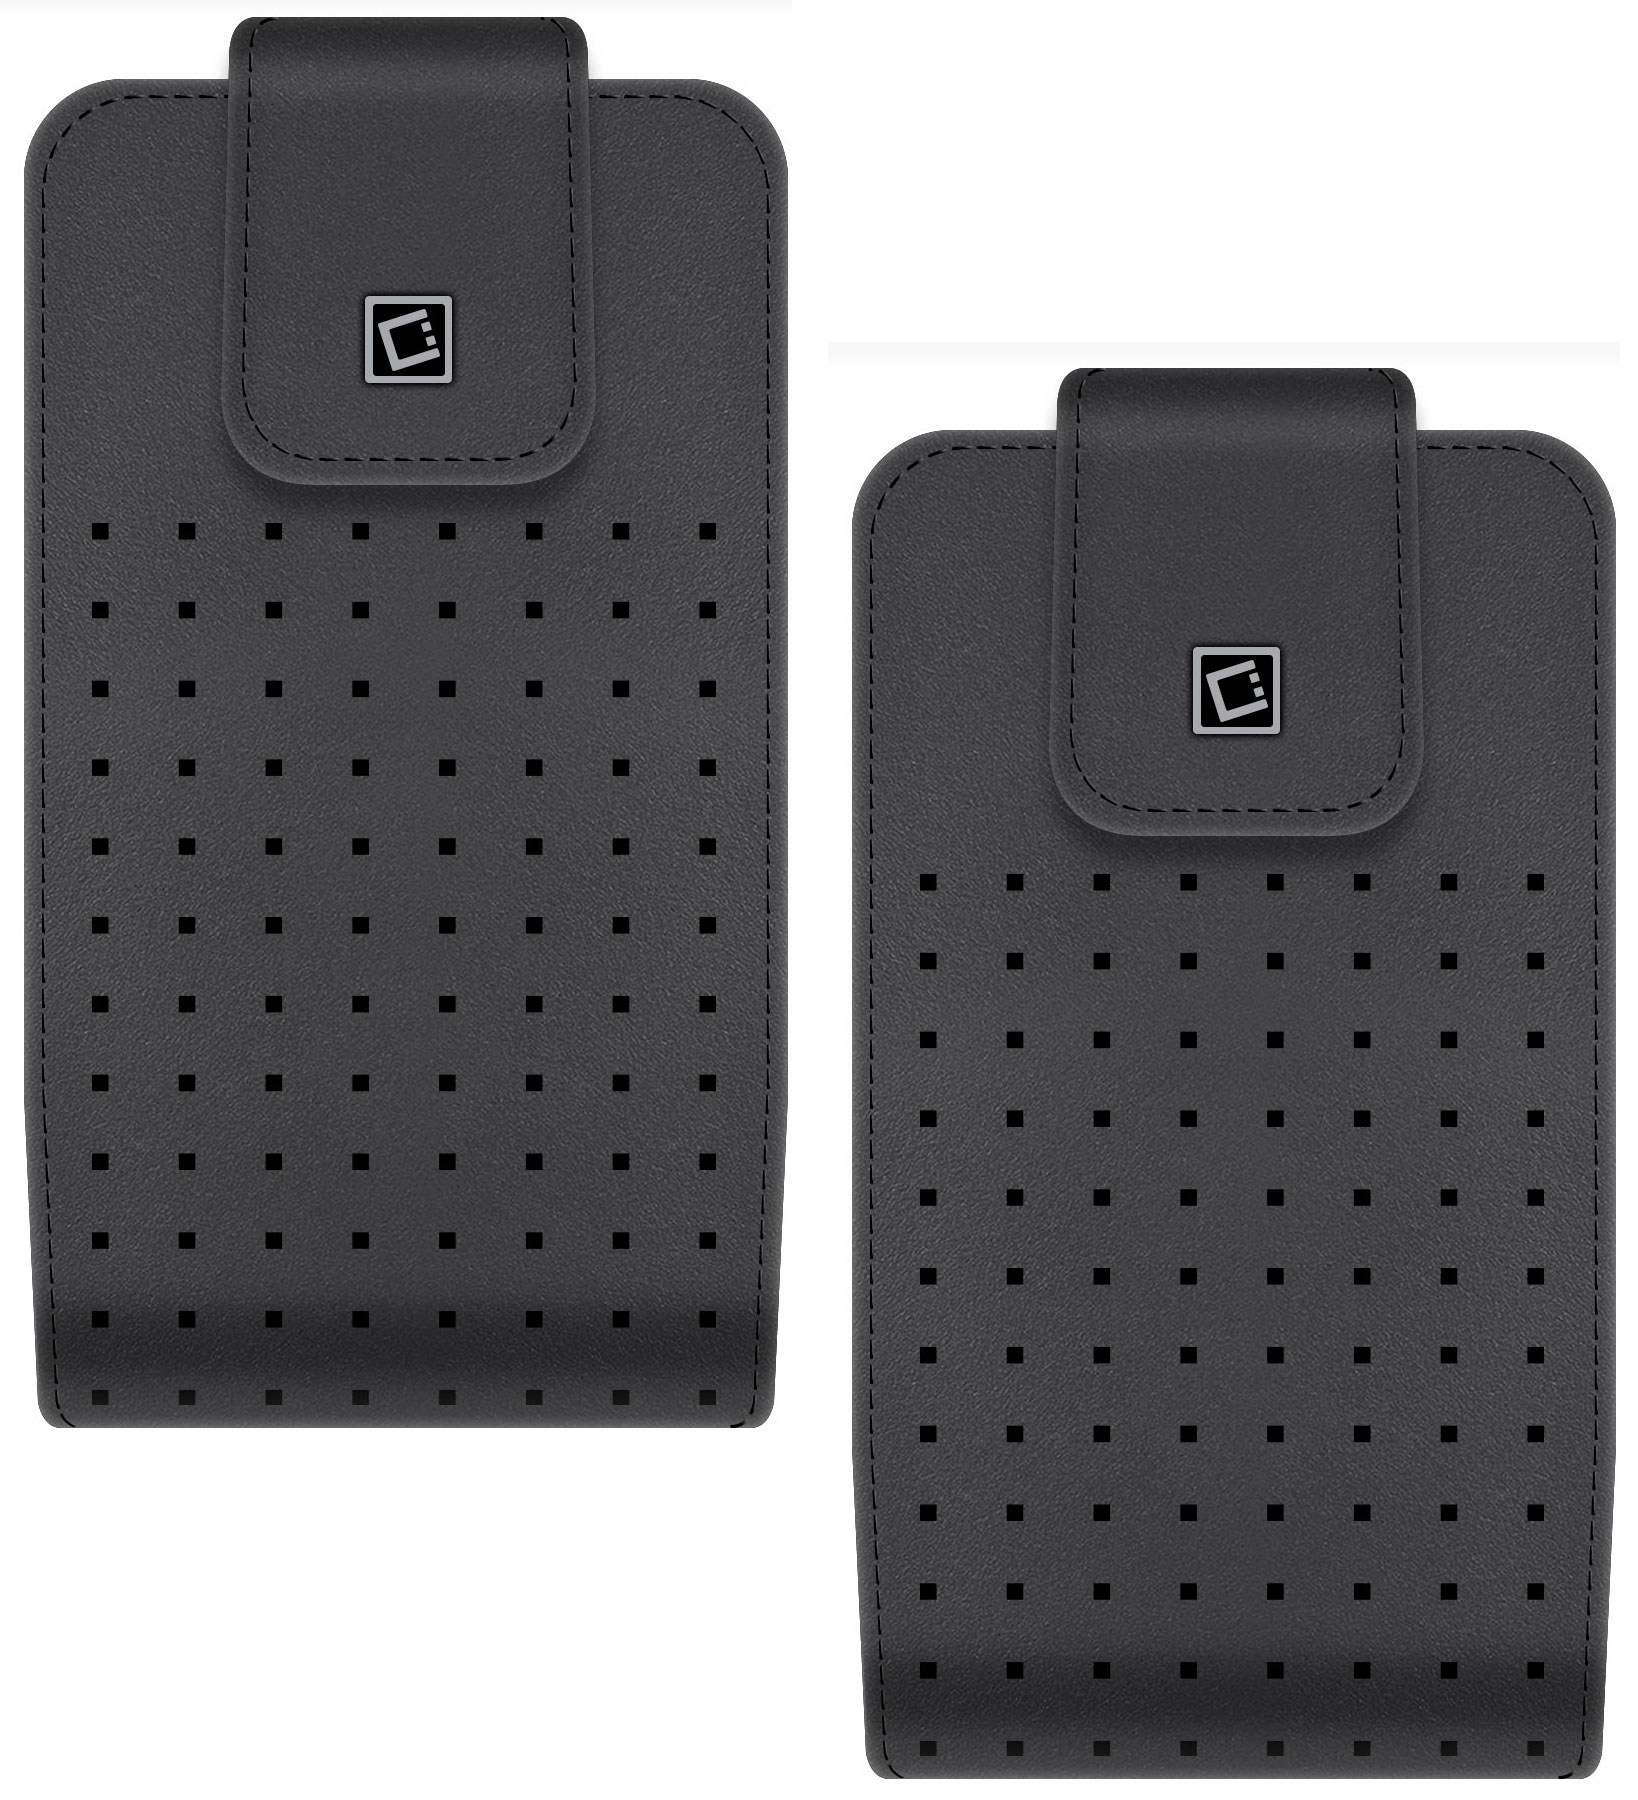 Vertical Leather Case Swivel Clip For ZTE Blade Spark Cellet Teramo Black Pack Of 2